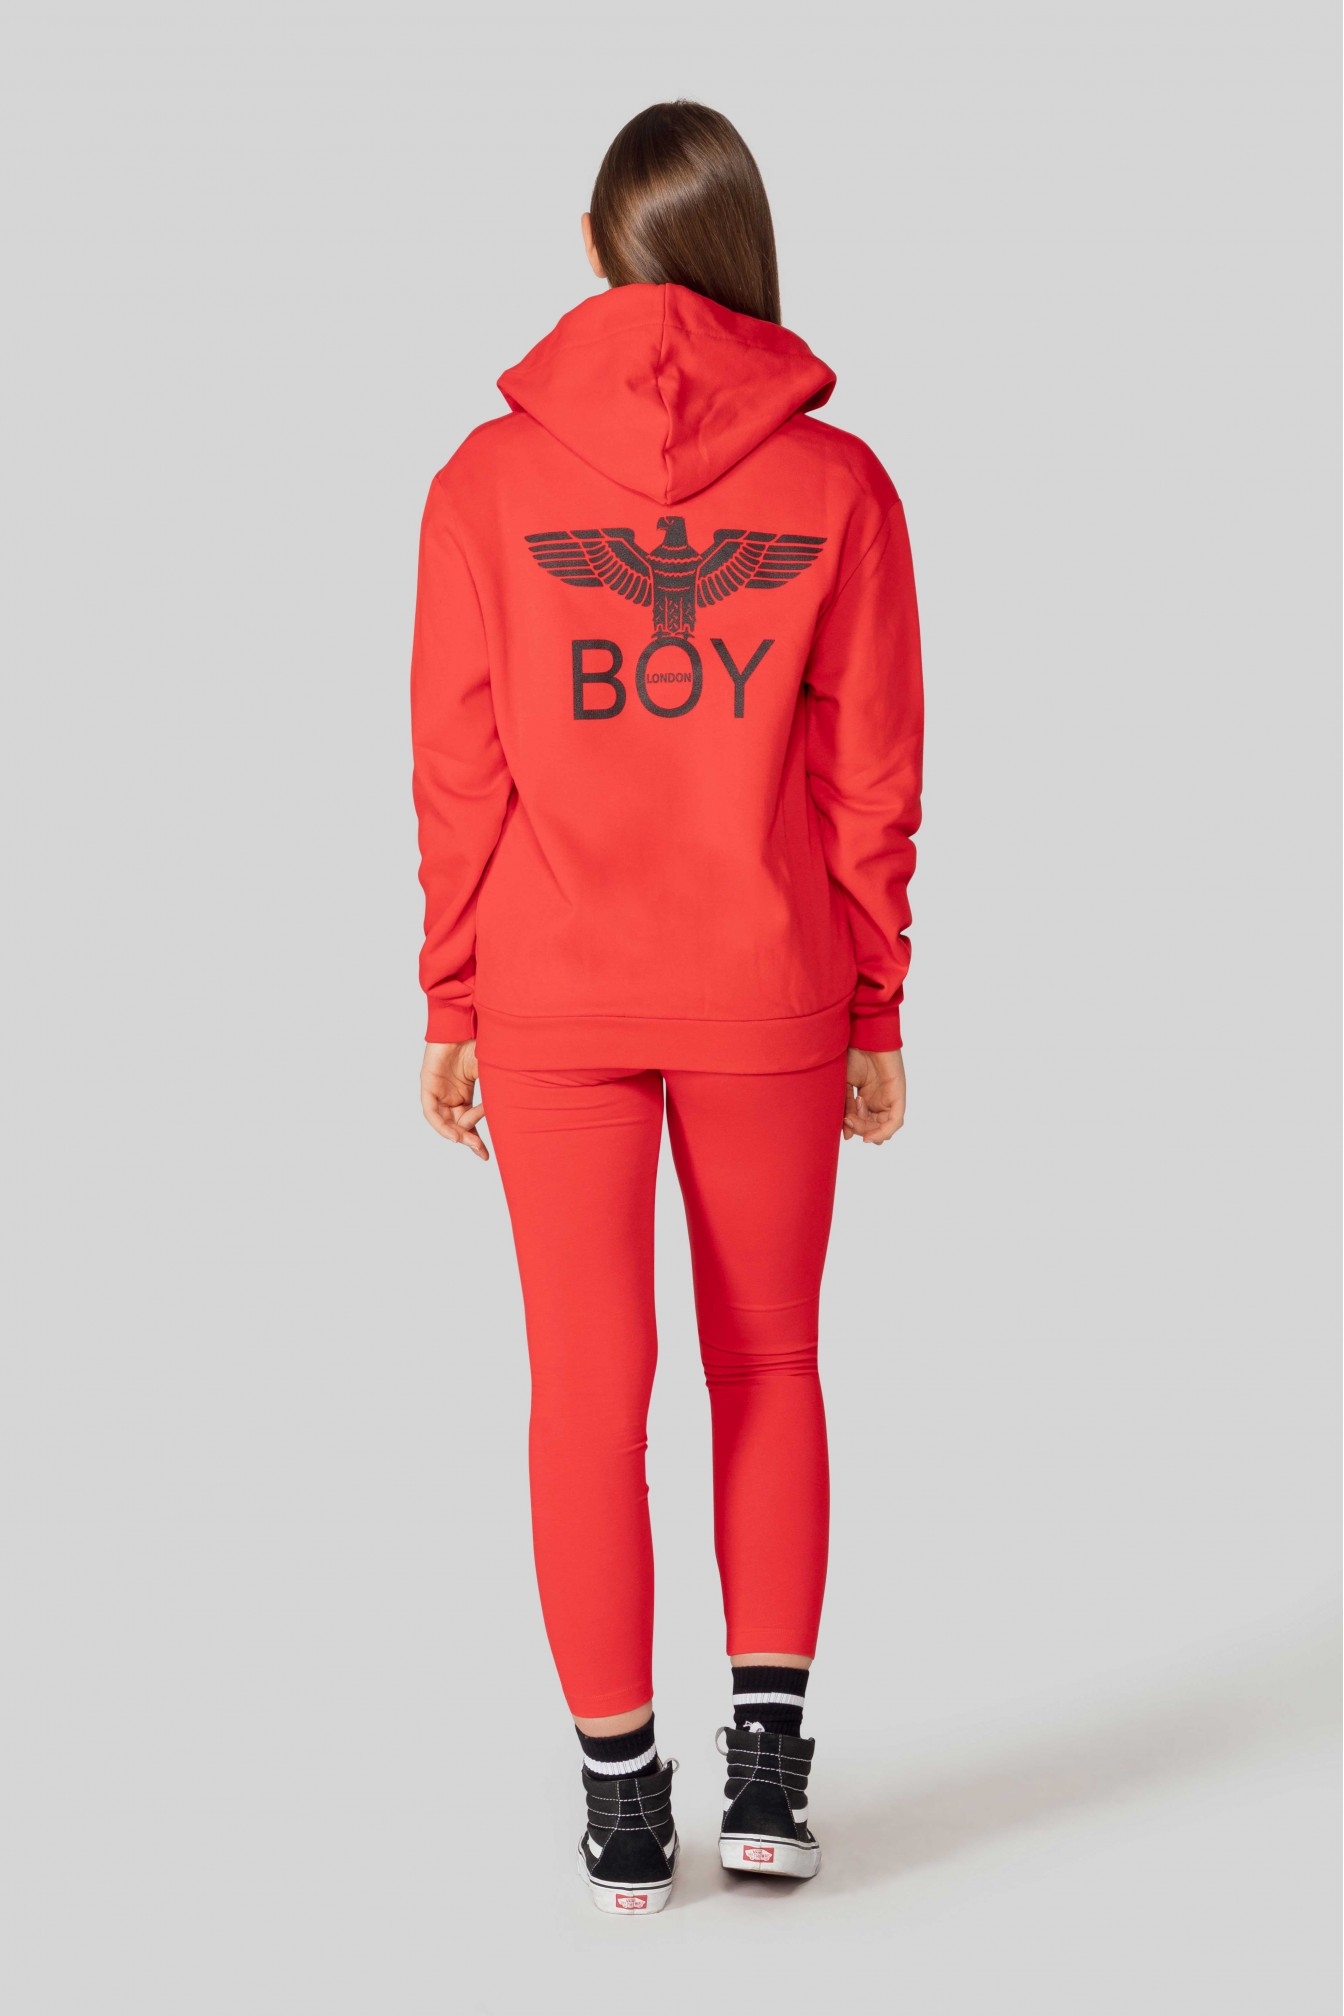 FELPA - BLD2601 - BOY LONDON